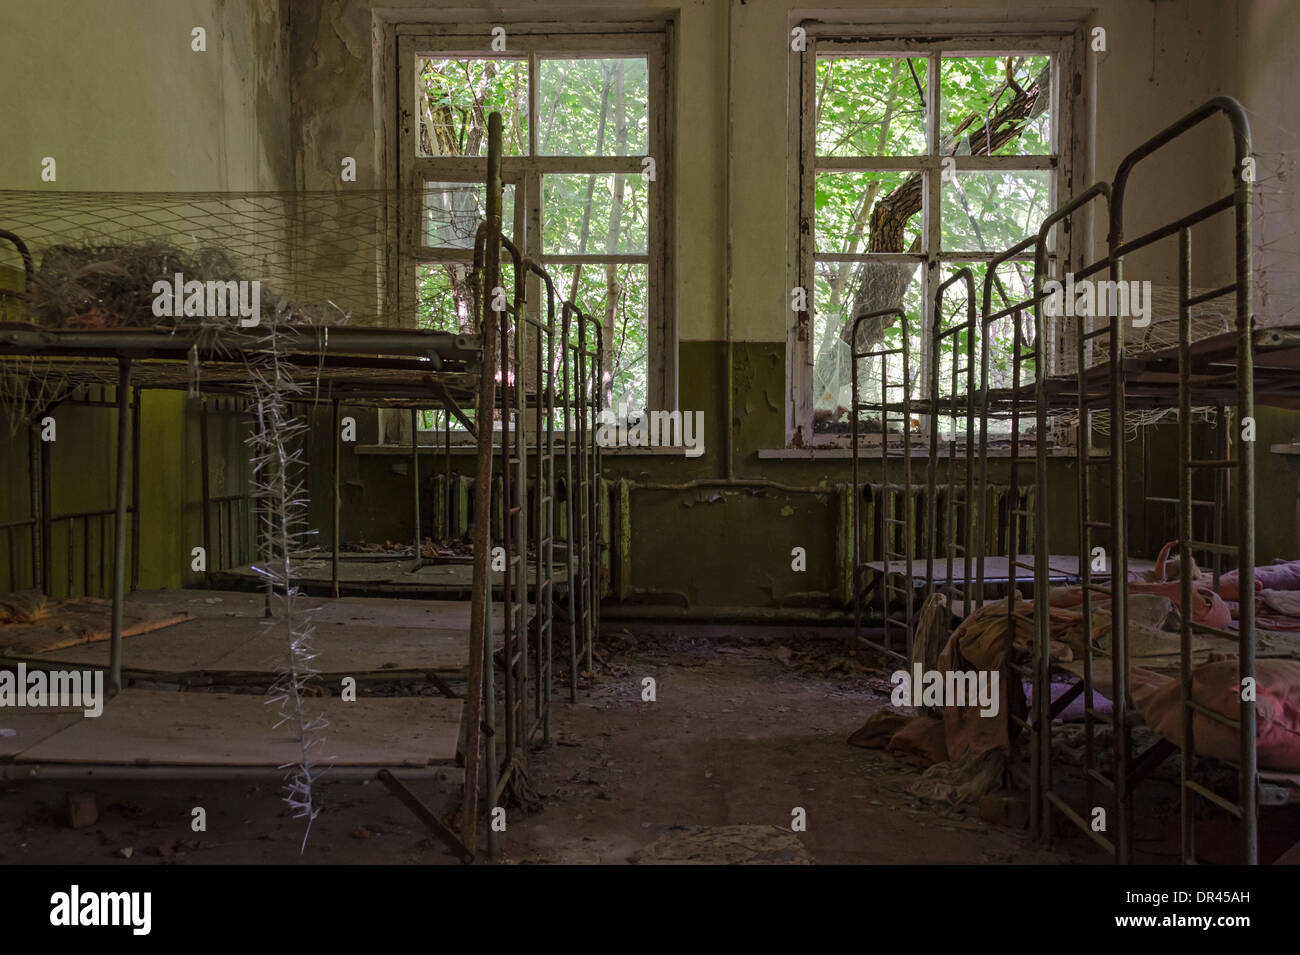 Hospital ruined by Chernobyl Nuclear Accident, Ukraine - Stock Image